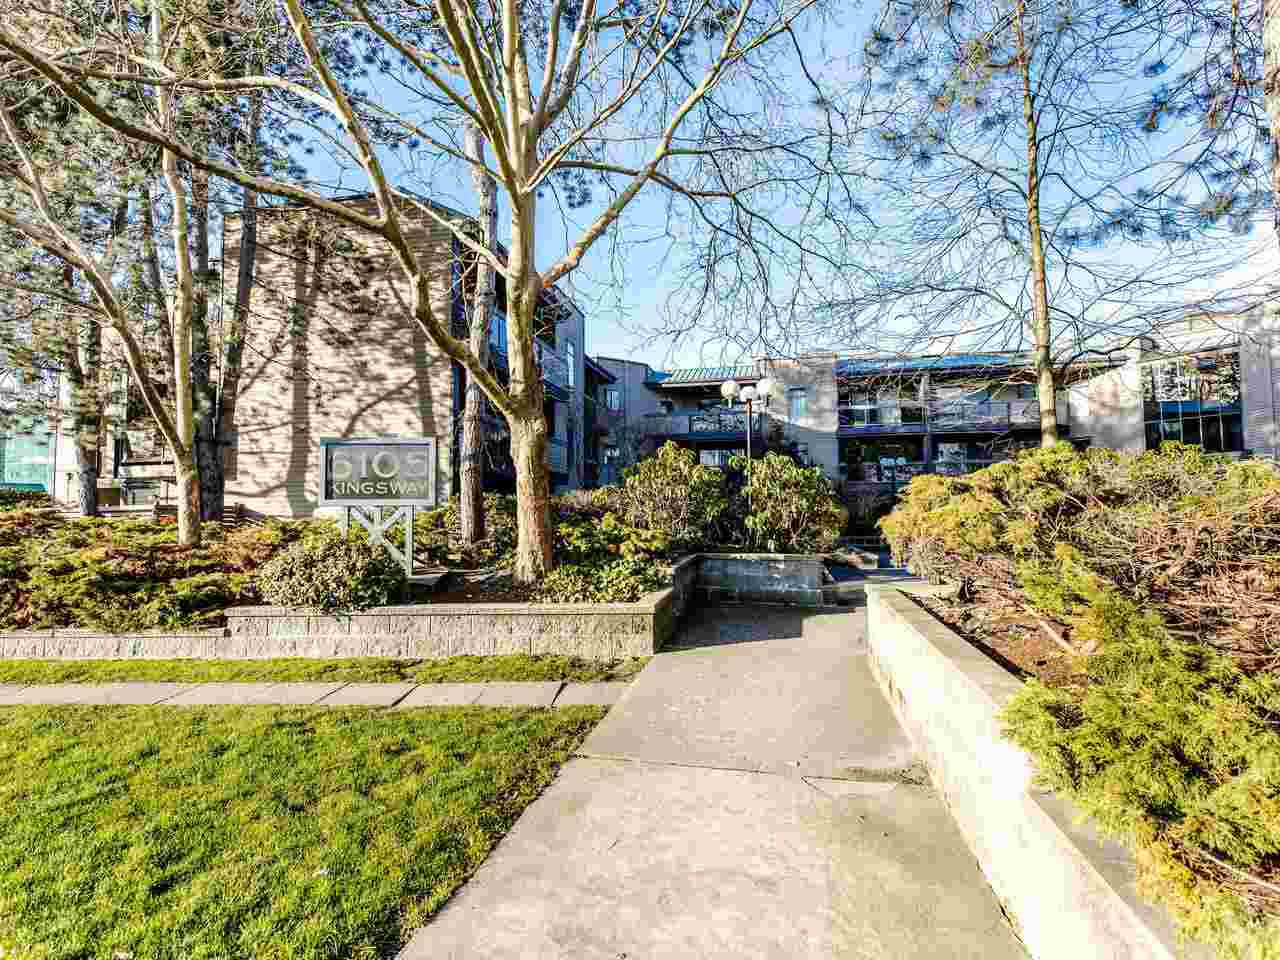 Main Photo: 201 6105 KINGSWAY in Burnaby: Highgate Condo for sale (Burnaby South)  : MLS®# R2438097